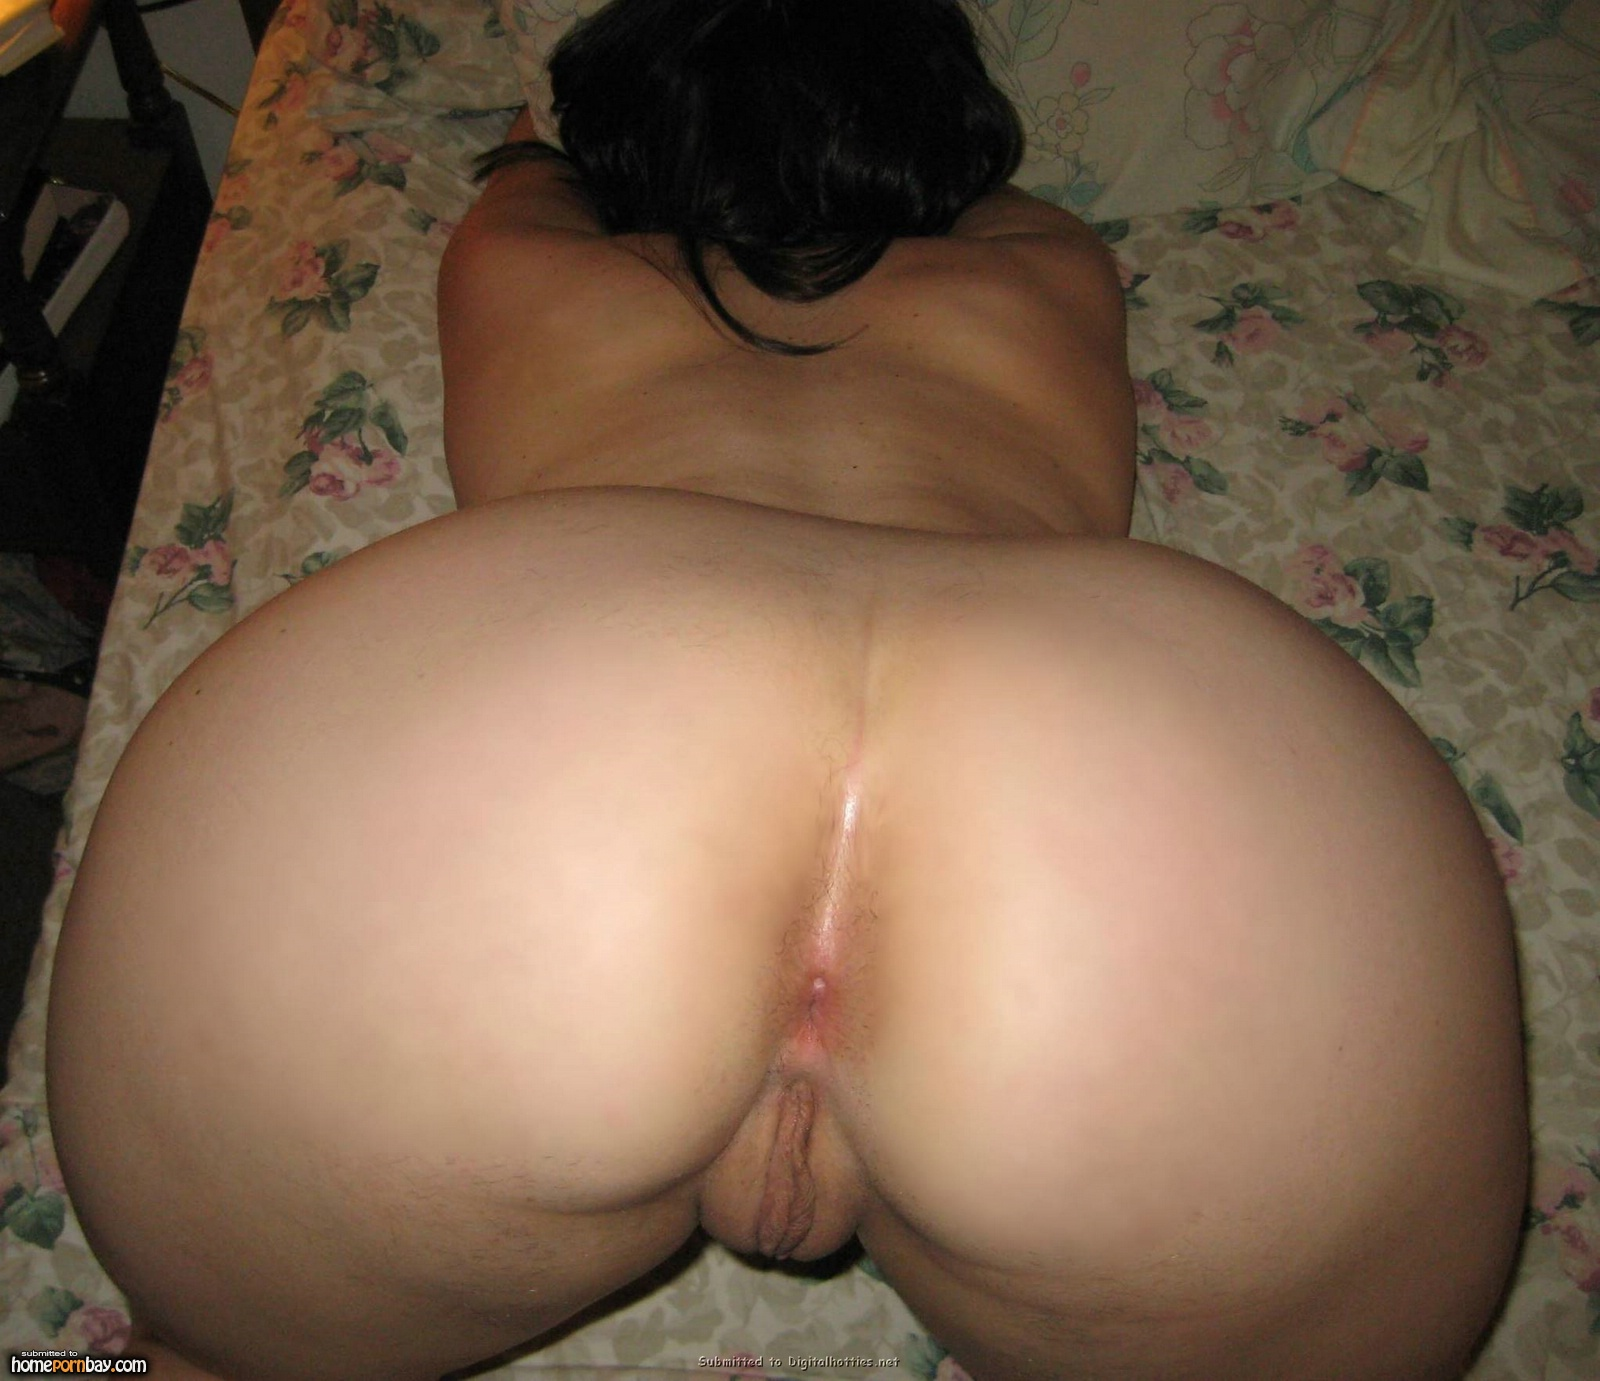 Hot bubble butt milf homemade